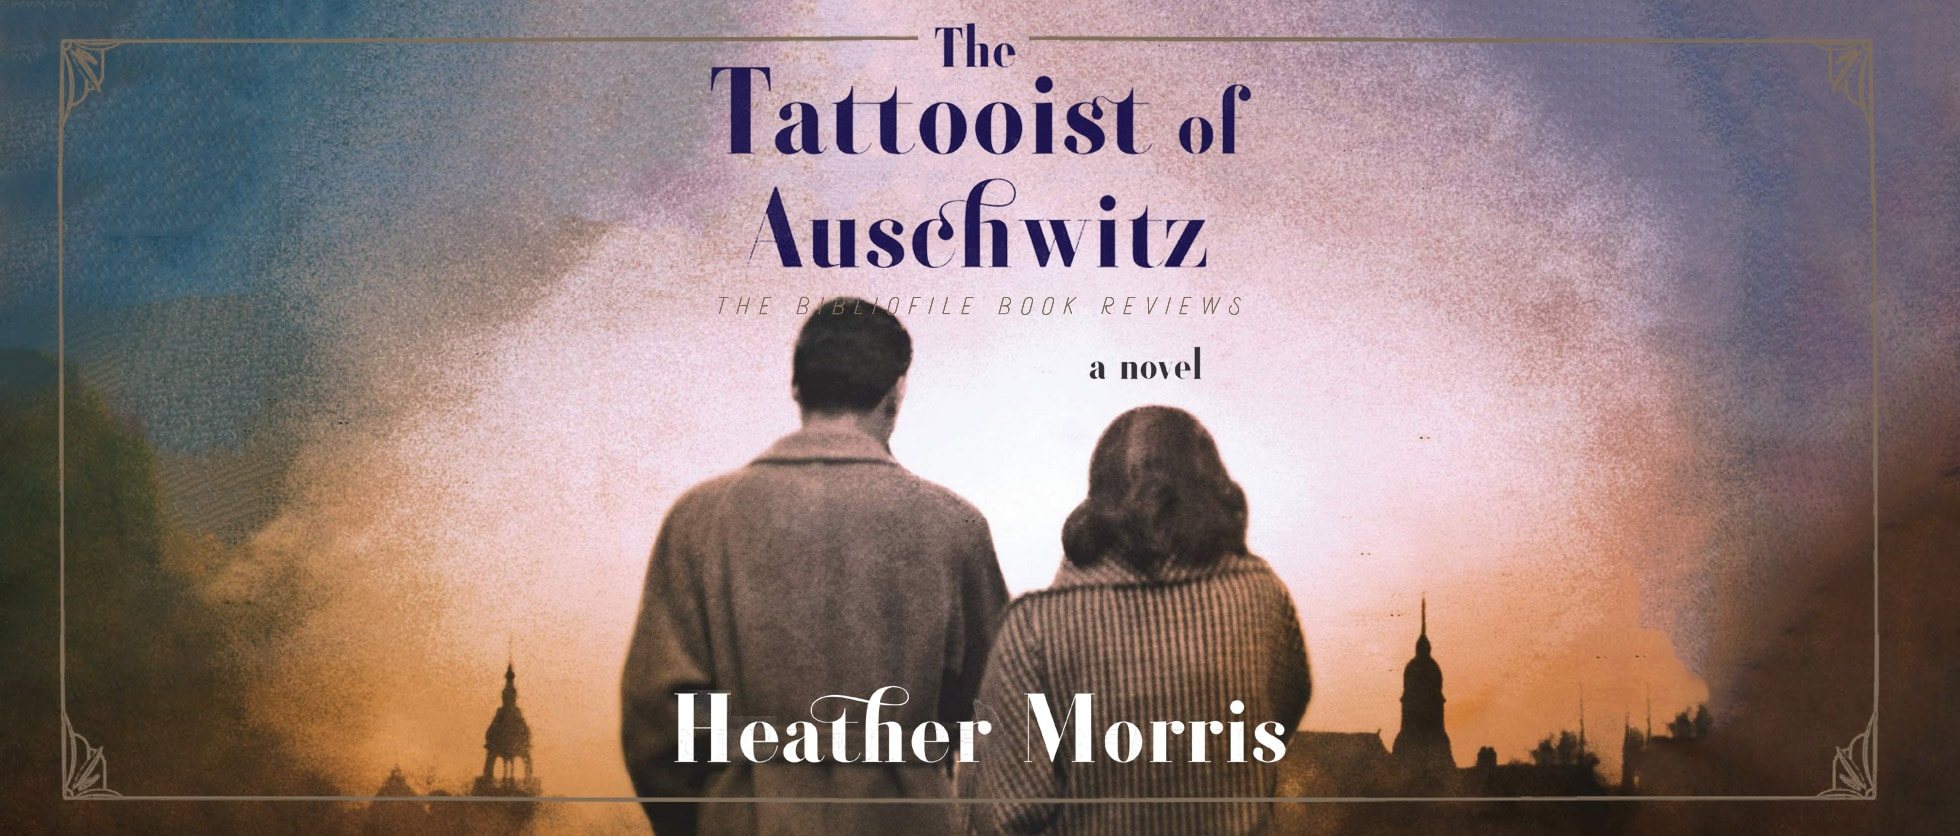 tattooist of auschwitz heather morris summary review synopsis